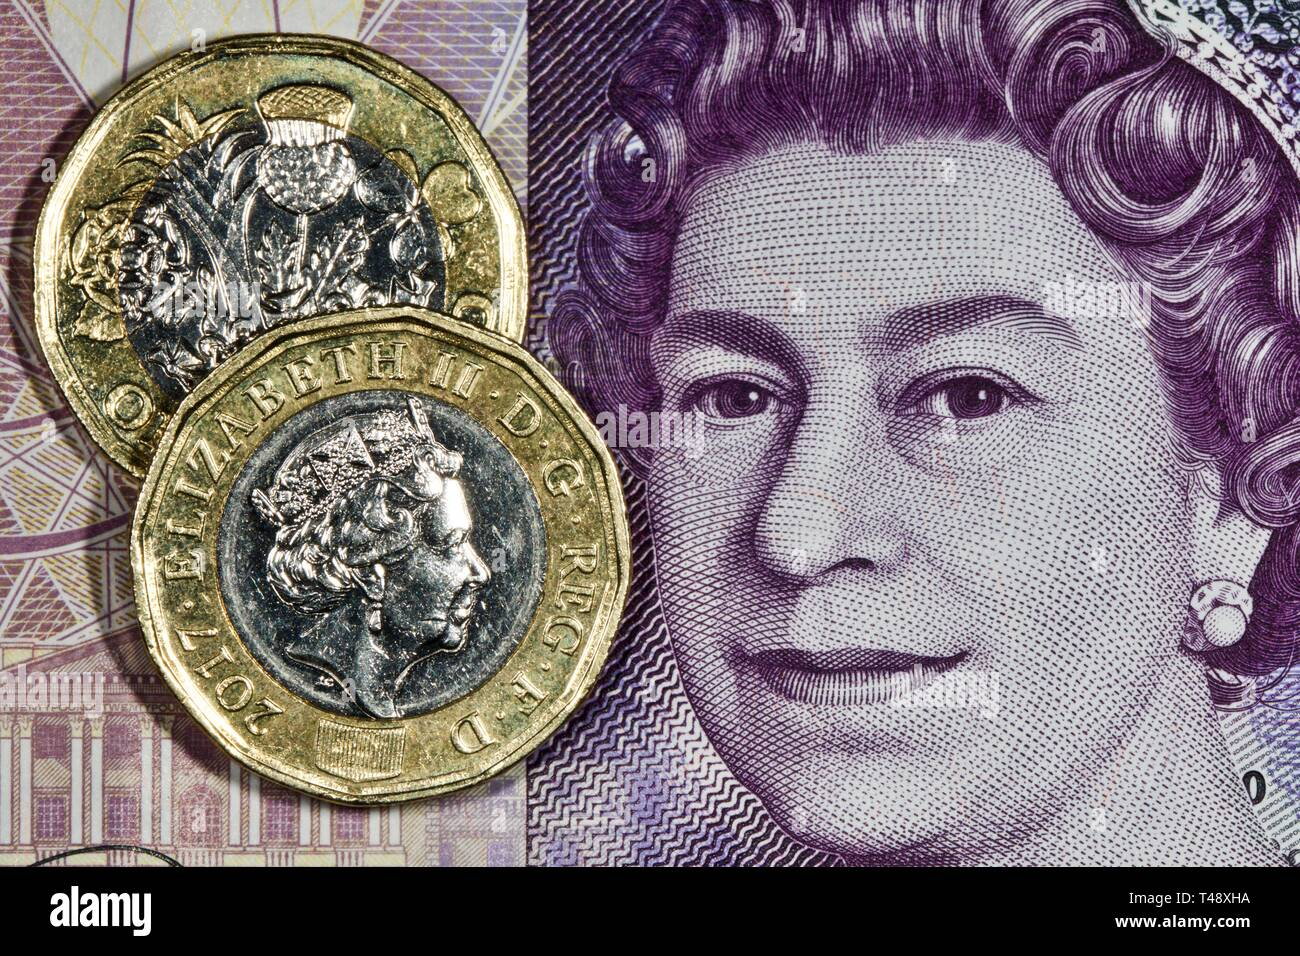 New one pound coins on a twenty pound banknote - Stock Image